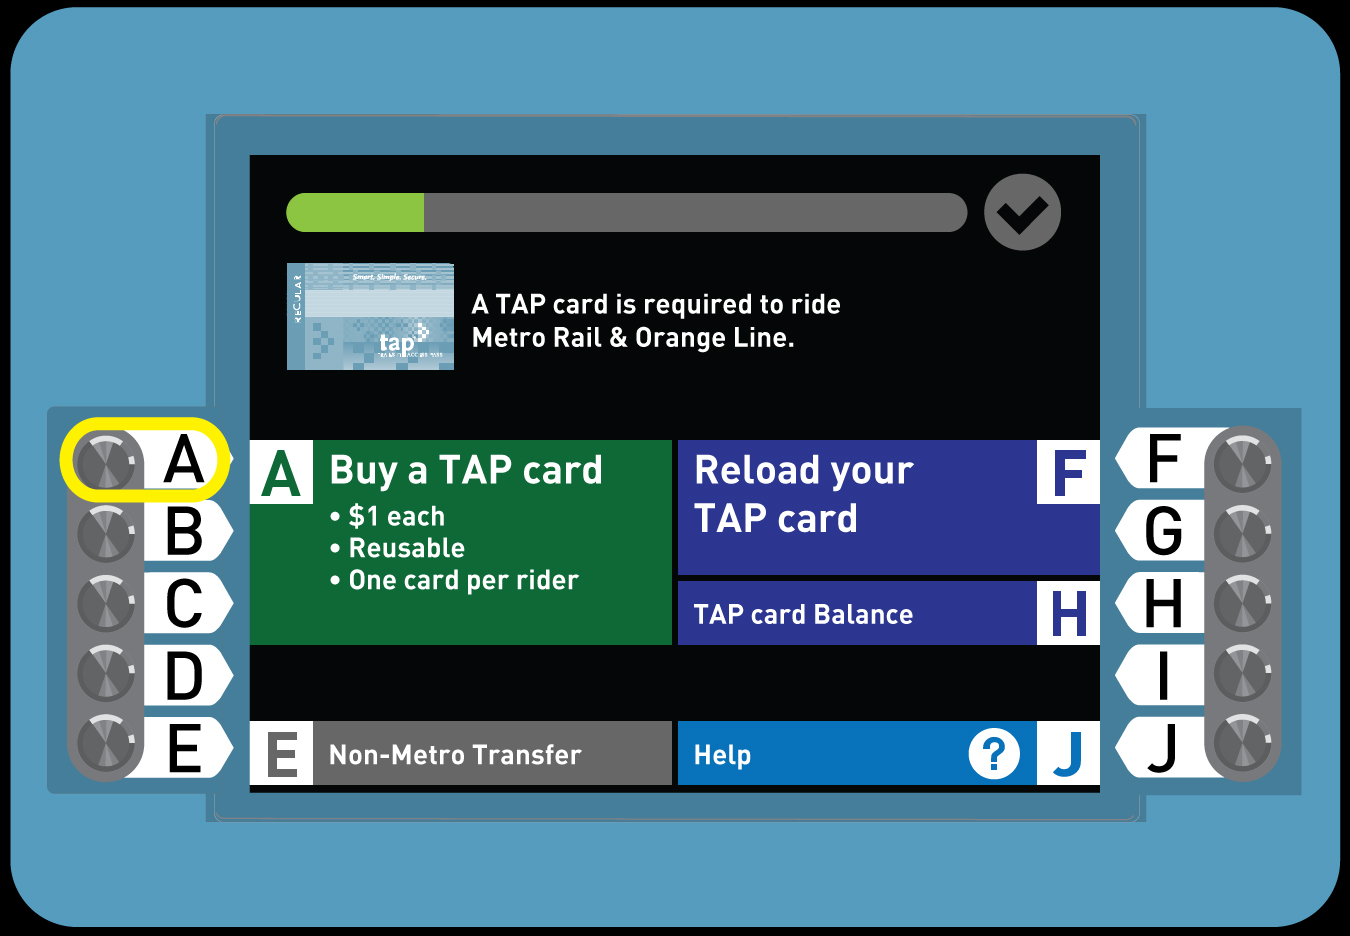 2. Buy a Regular TAP card with Stored Value